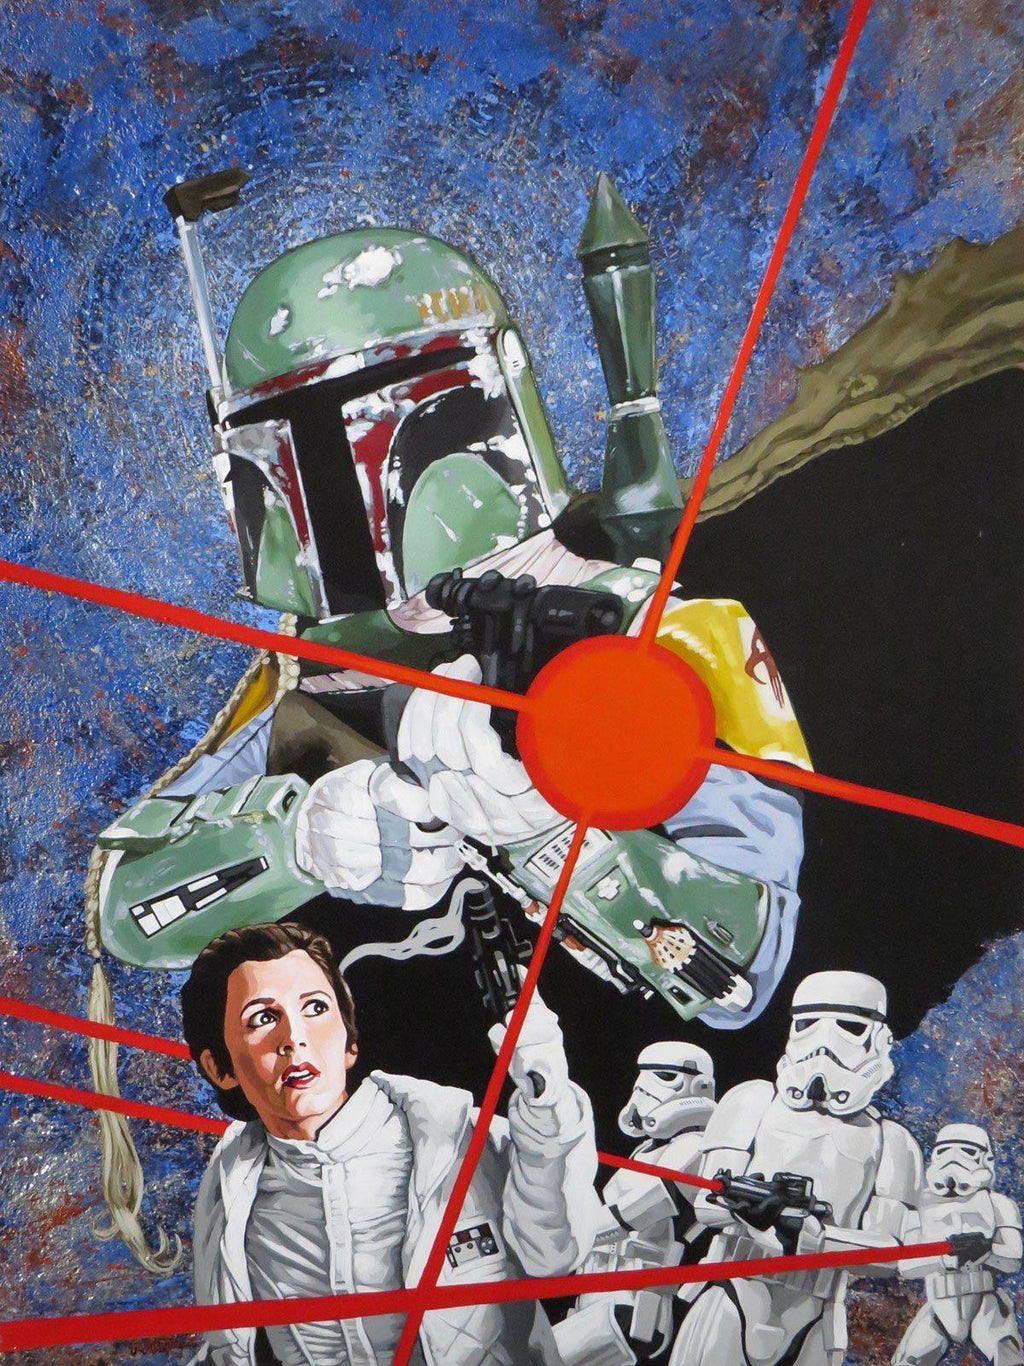 BOBA FETT ORIGINAL PAINTING ON WOOD BY RANDY MARTINEZ Original Painting Randy Martinez